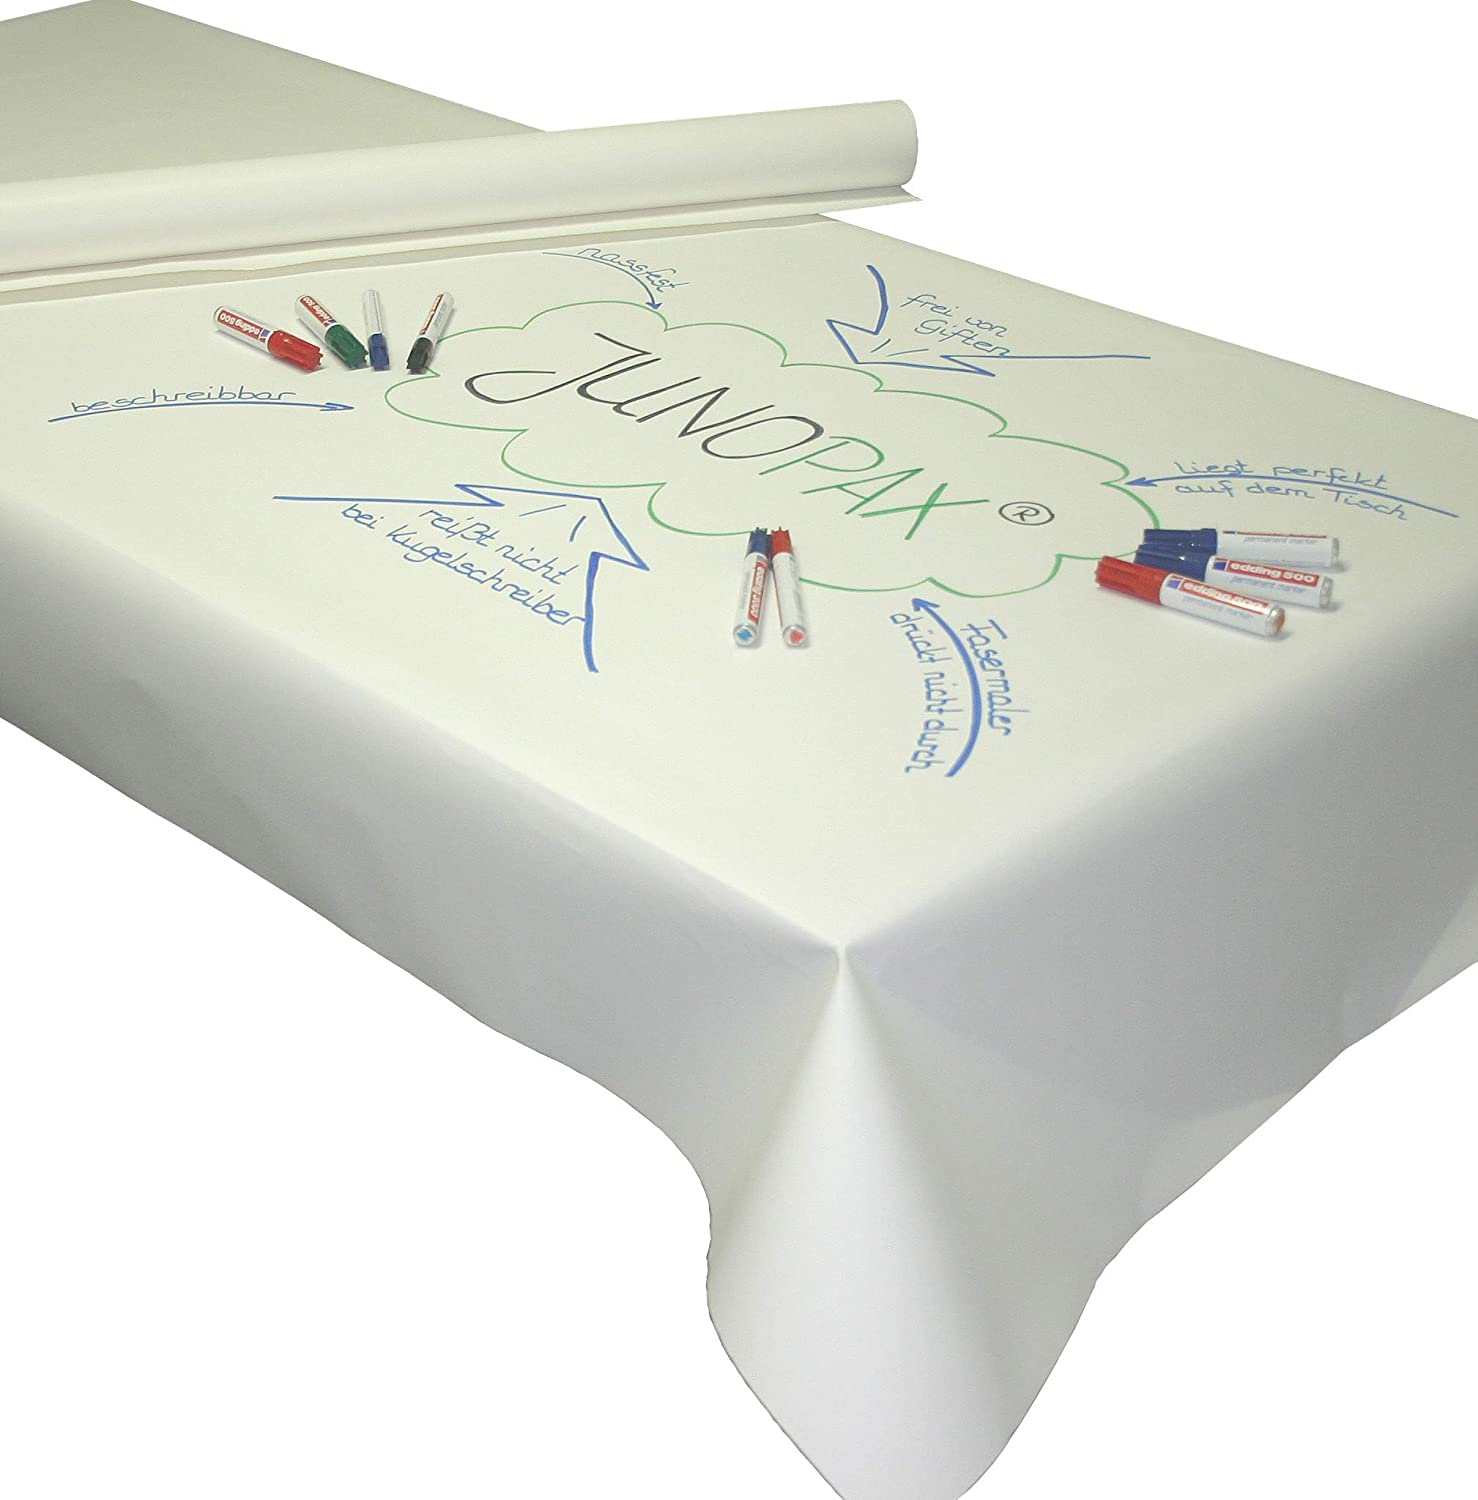 50/x 1.15/m Write On Paper Tablecover Juno Pax/® World Caf/é Method